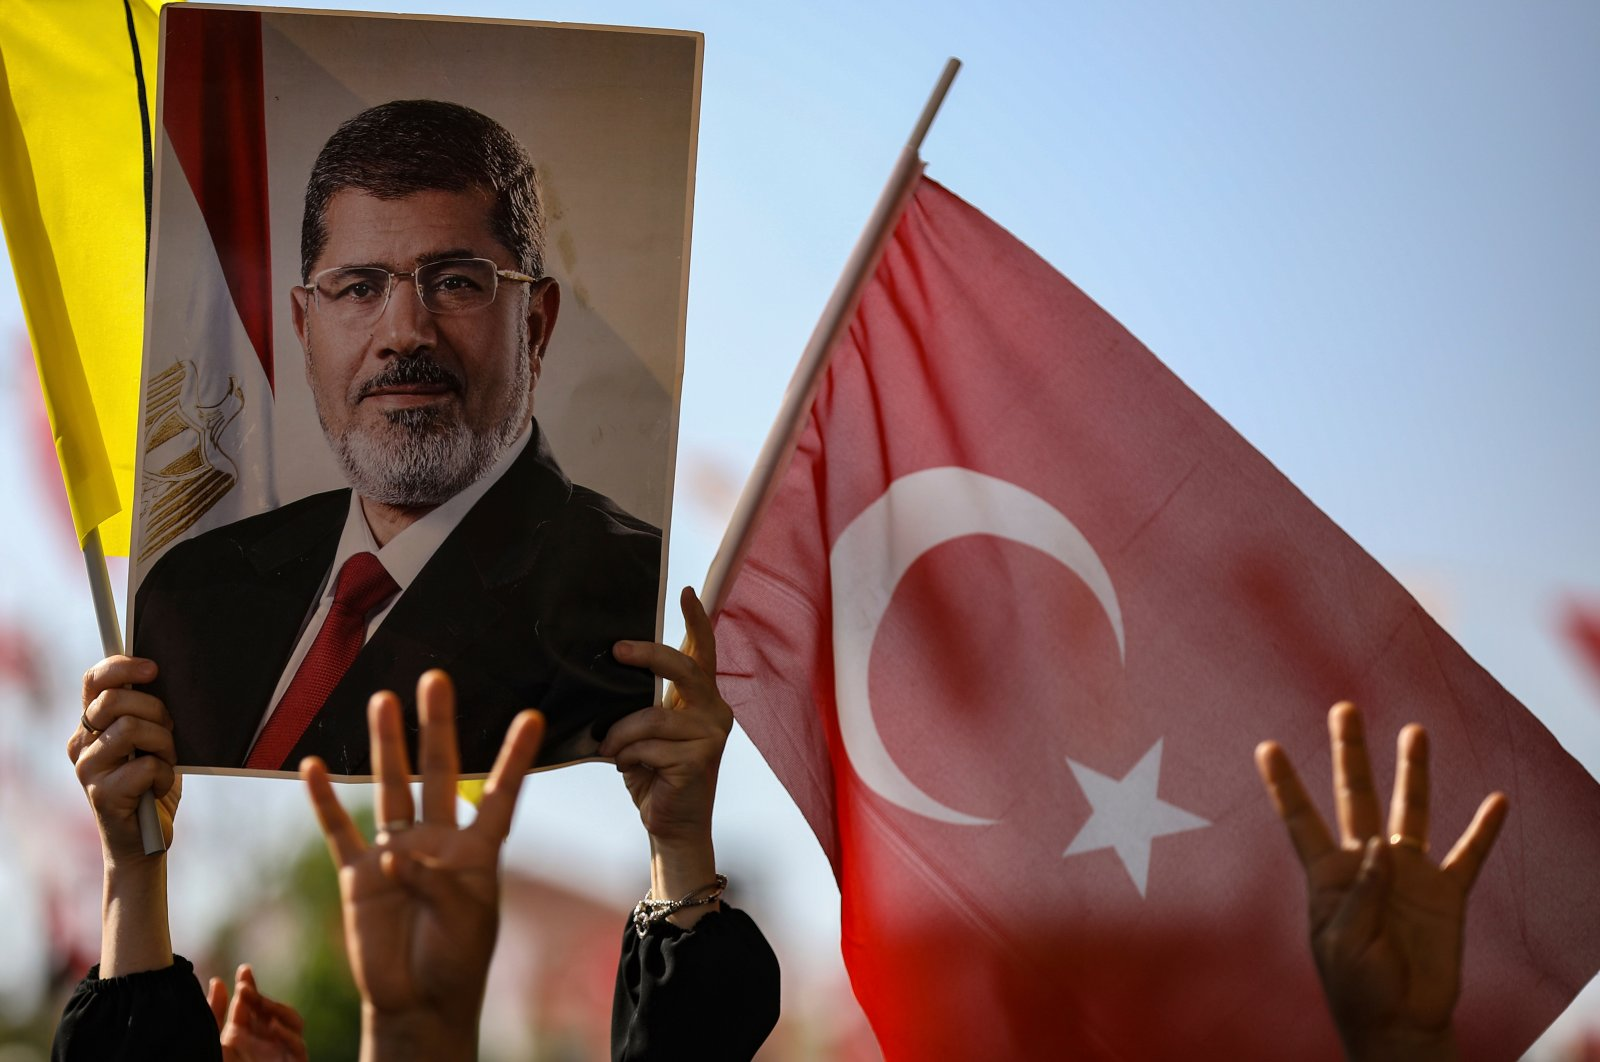 Supporters attend funeral prayers in absentia for ousted former Egyptian President Mohammed Morsi, pictured in the poster, at Fatih Mosque, Istanbul, Turkey, June 18, 2019. (AP Photo)